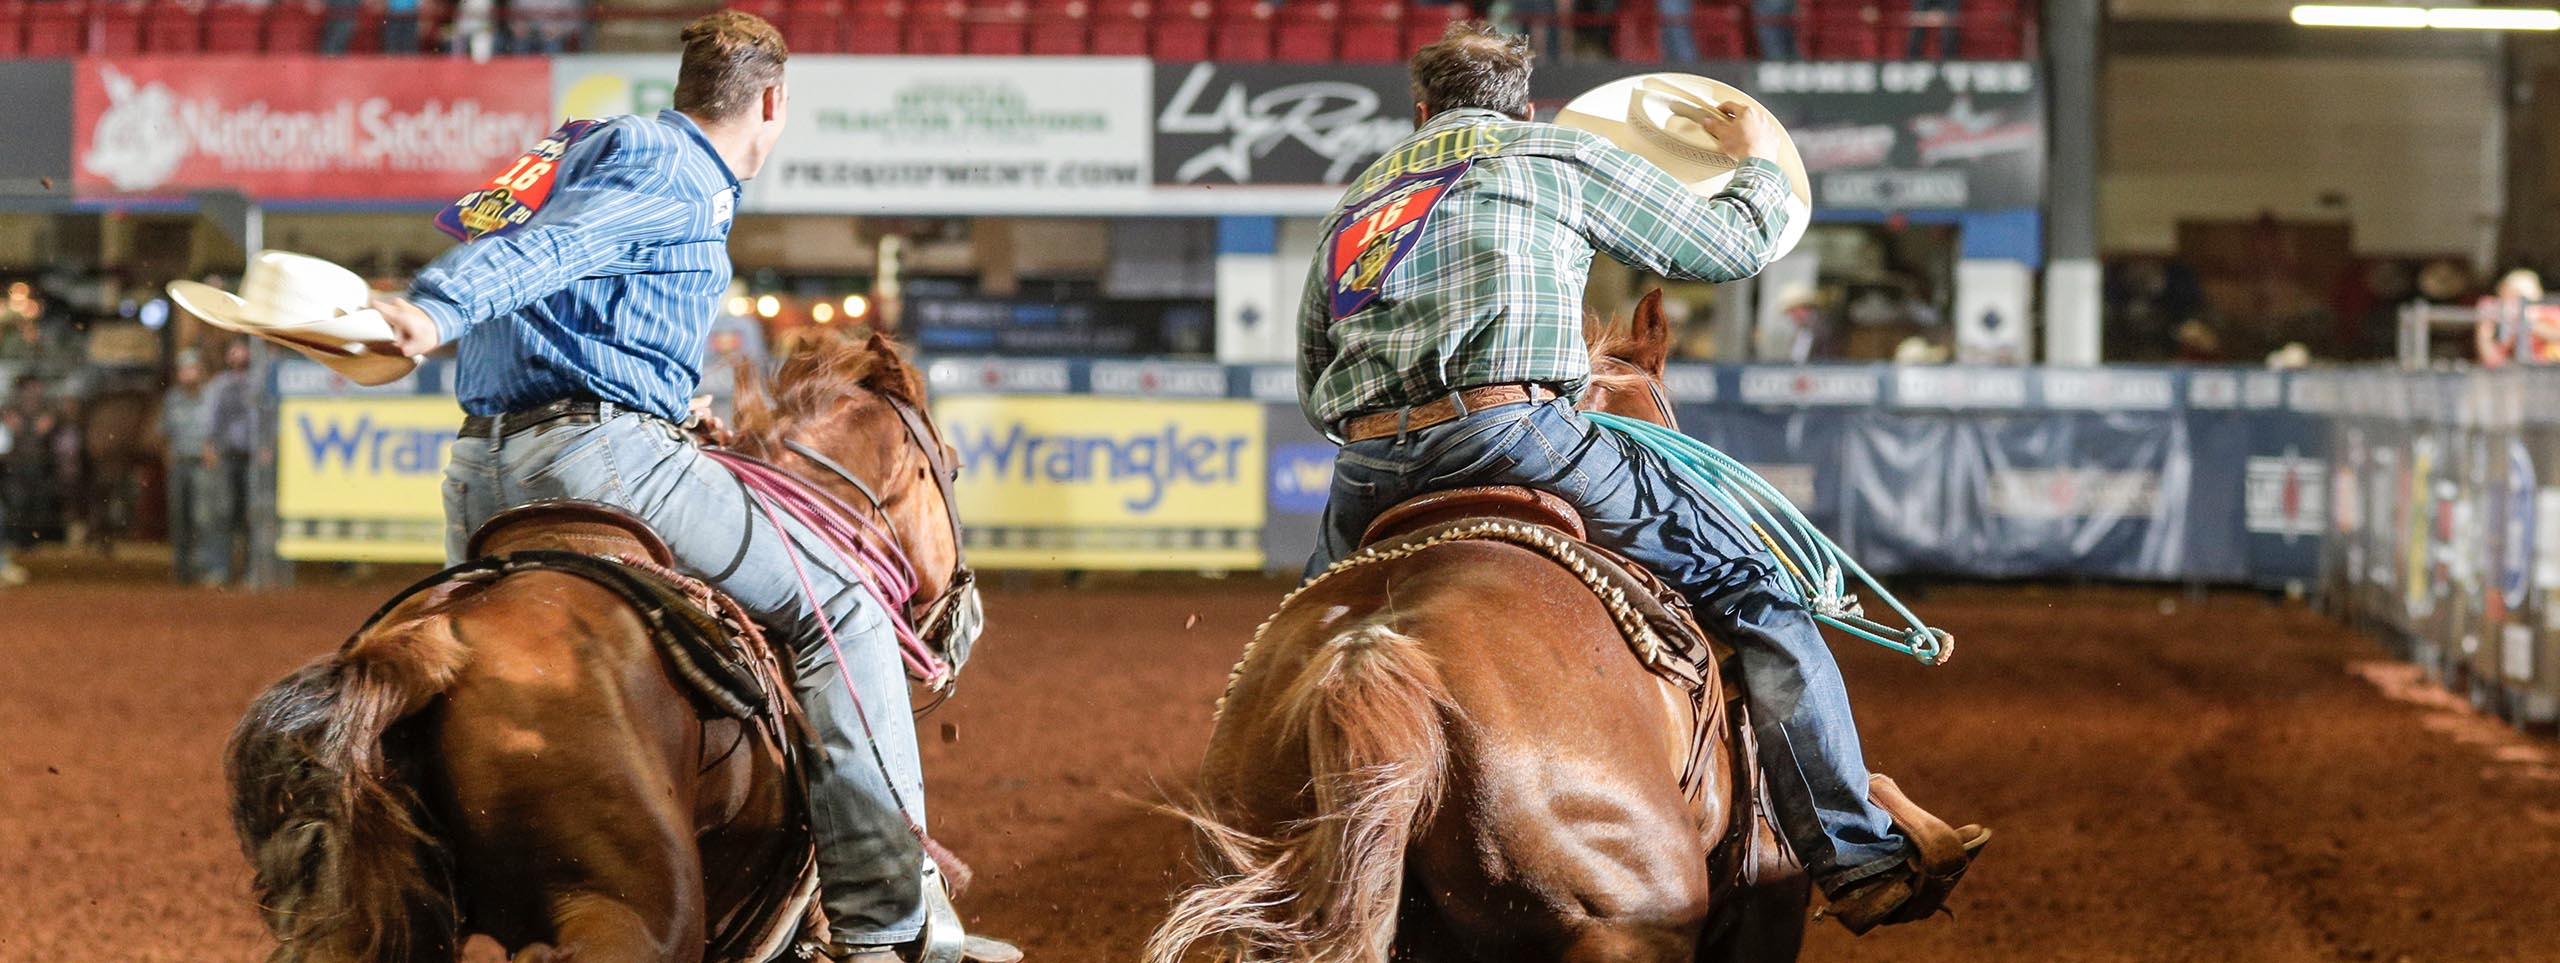 Fuller and Ward win $155K at one-of-a-kind BFI in Oklahoma